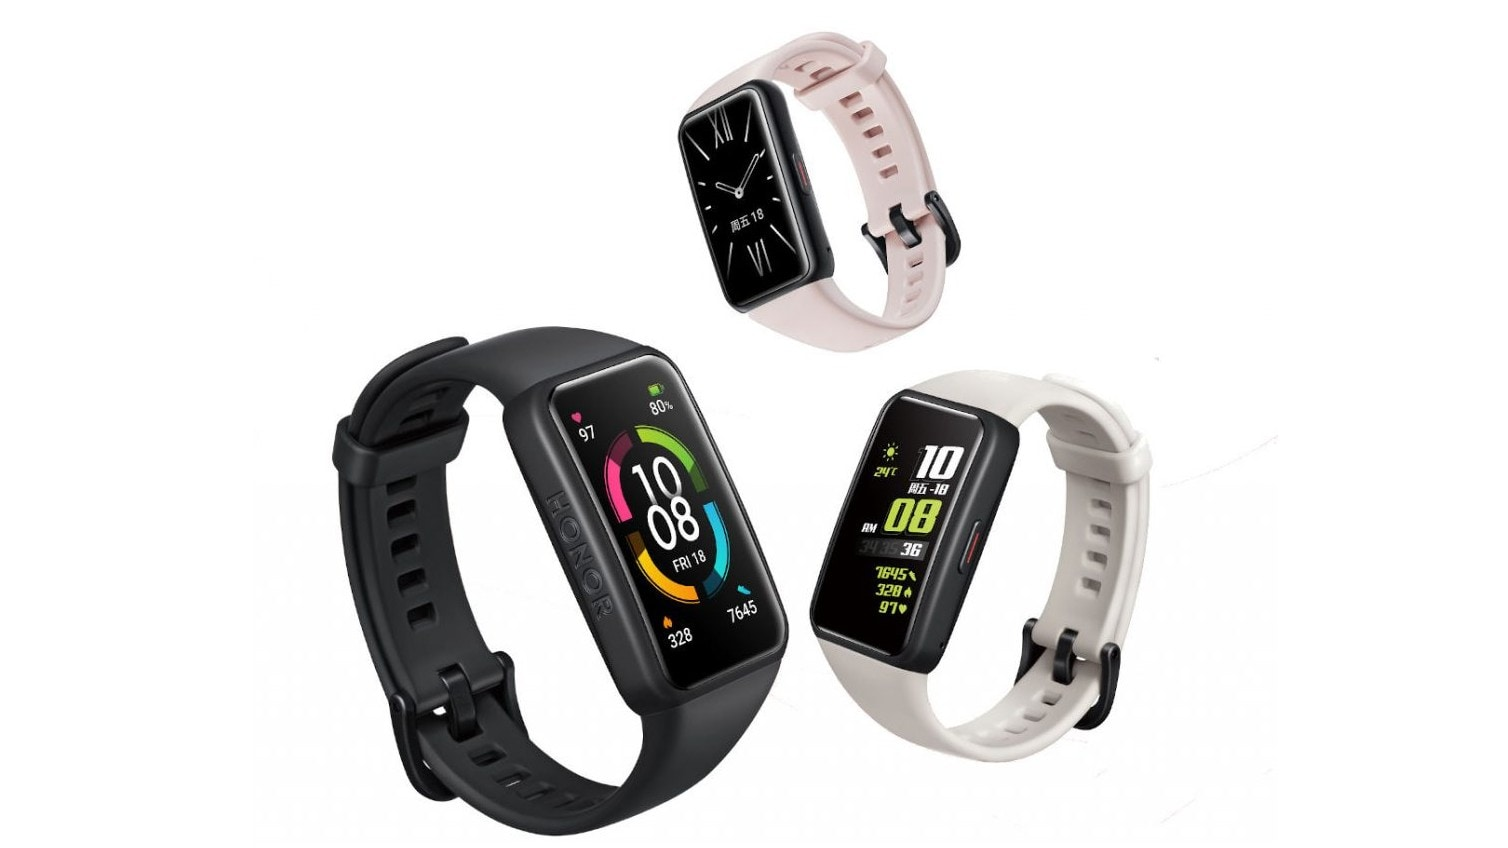 The Honor Band 6 features 2.5D curved glass protection, all-day heart rate monitoring, sleep tracking and SpO2 monitoring. Image: Honor